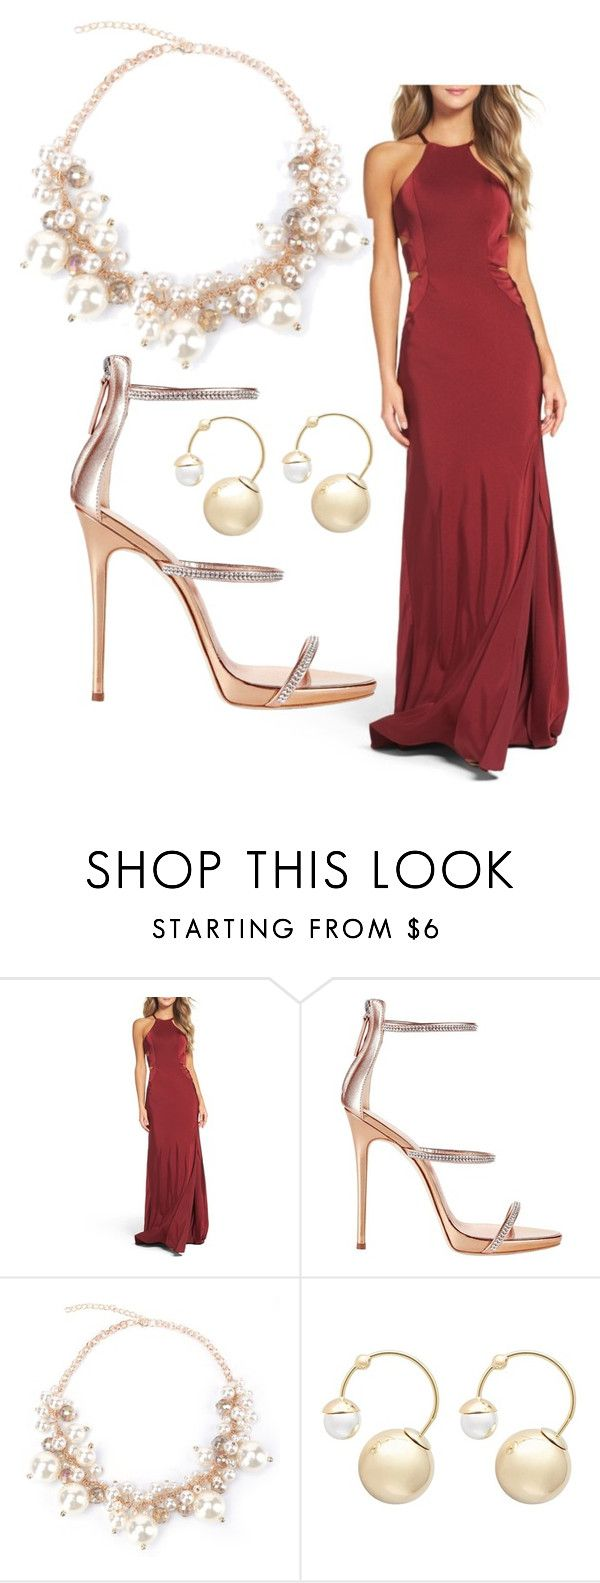 """Untitled #164"" by cchhaanntteell on Polyvore featuring La Femme, Giuseppe Zanotti and Witchery"